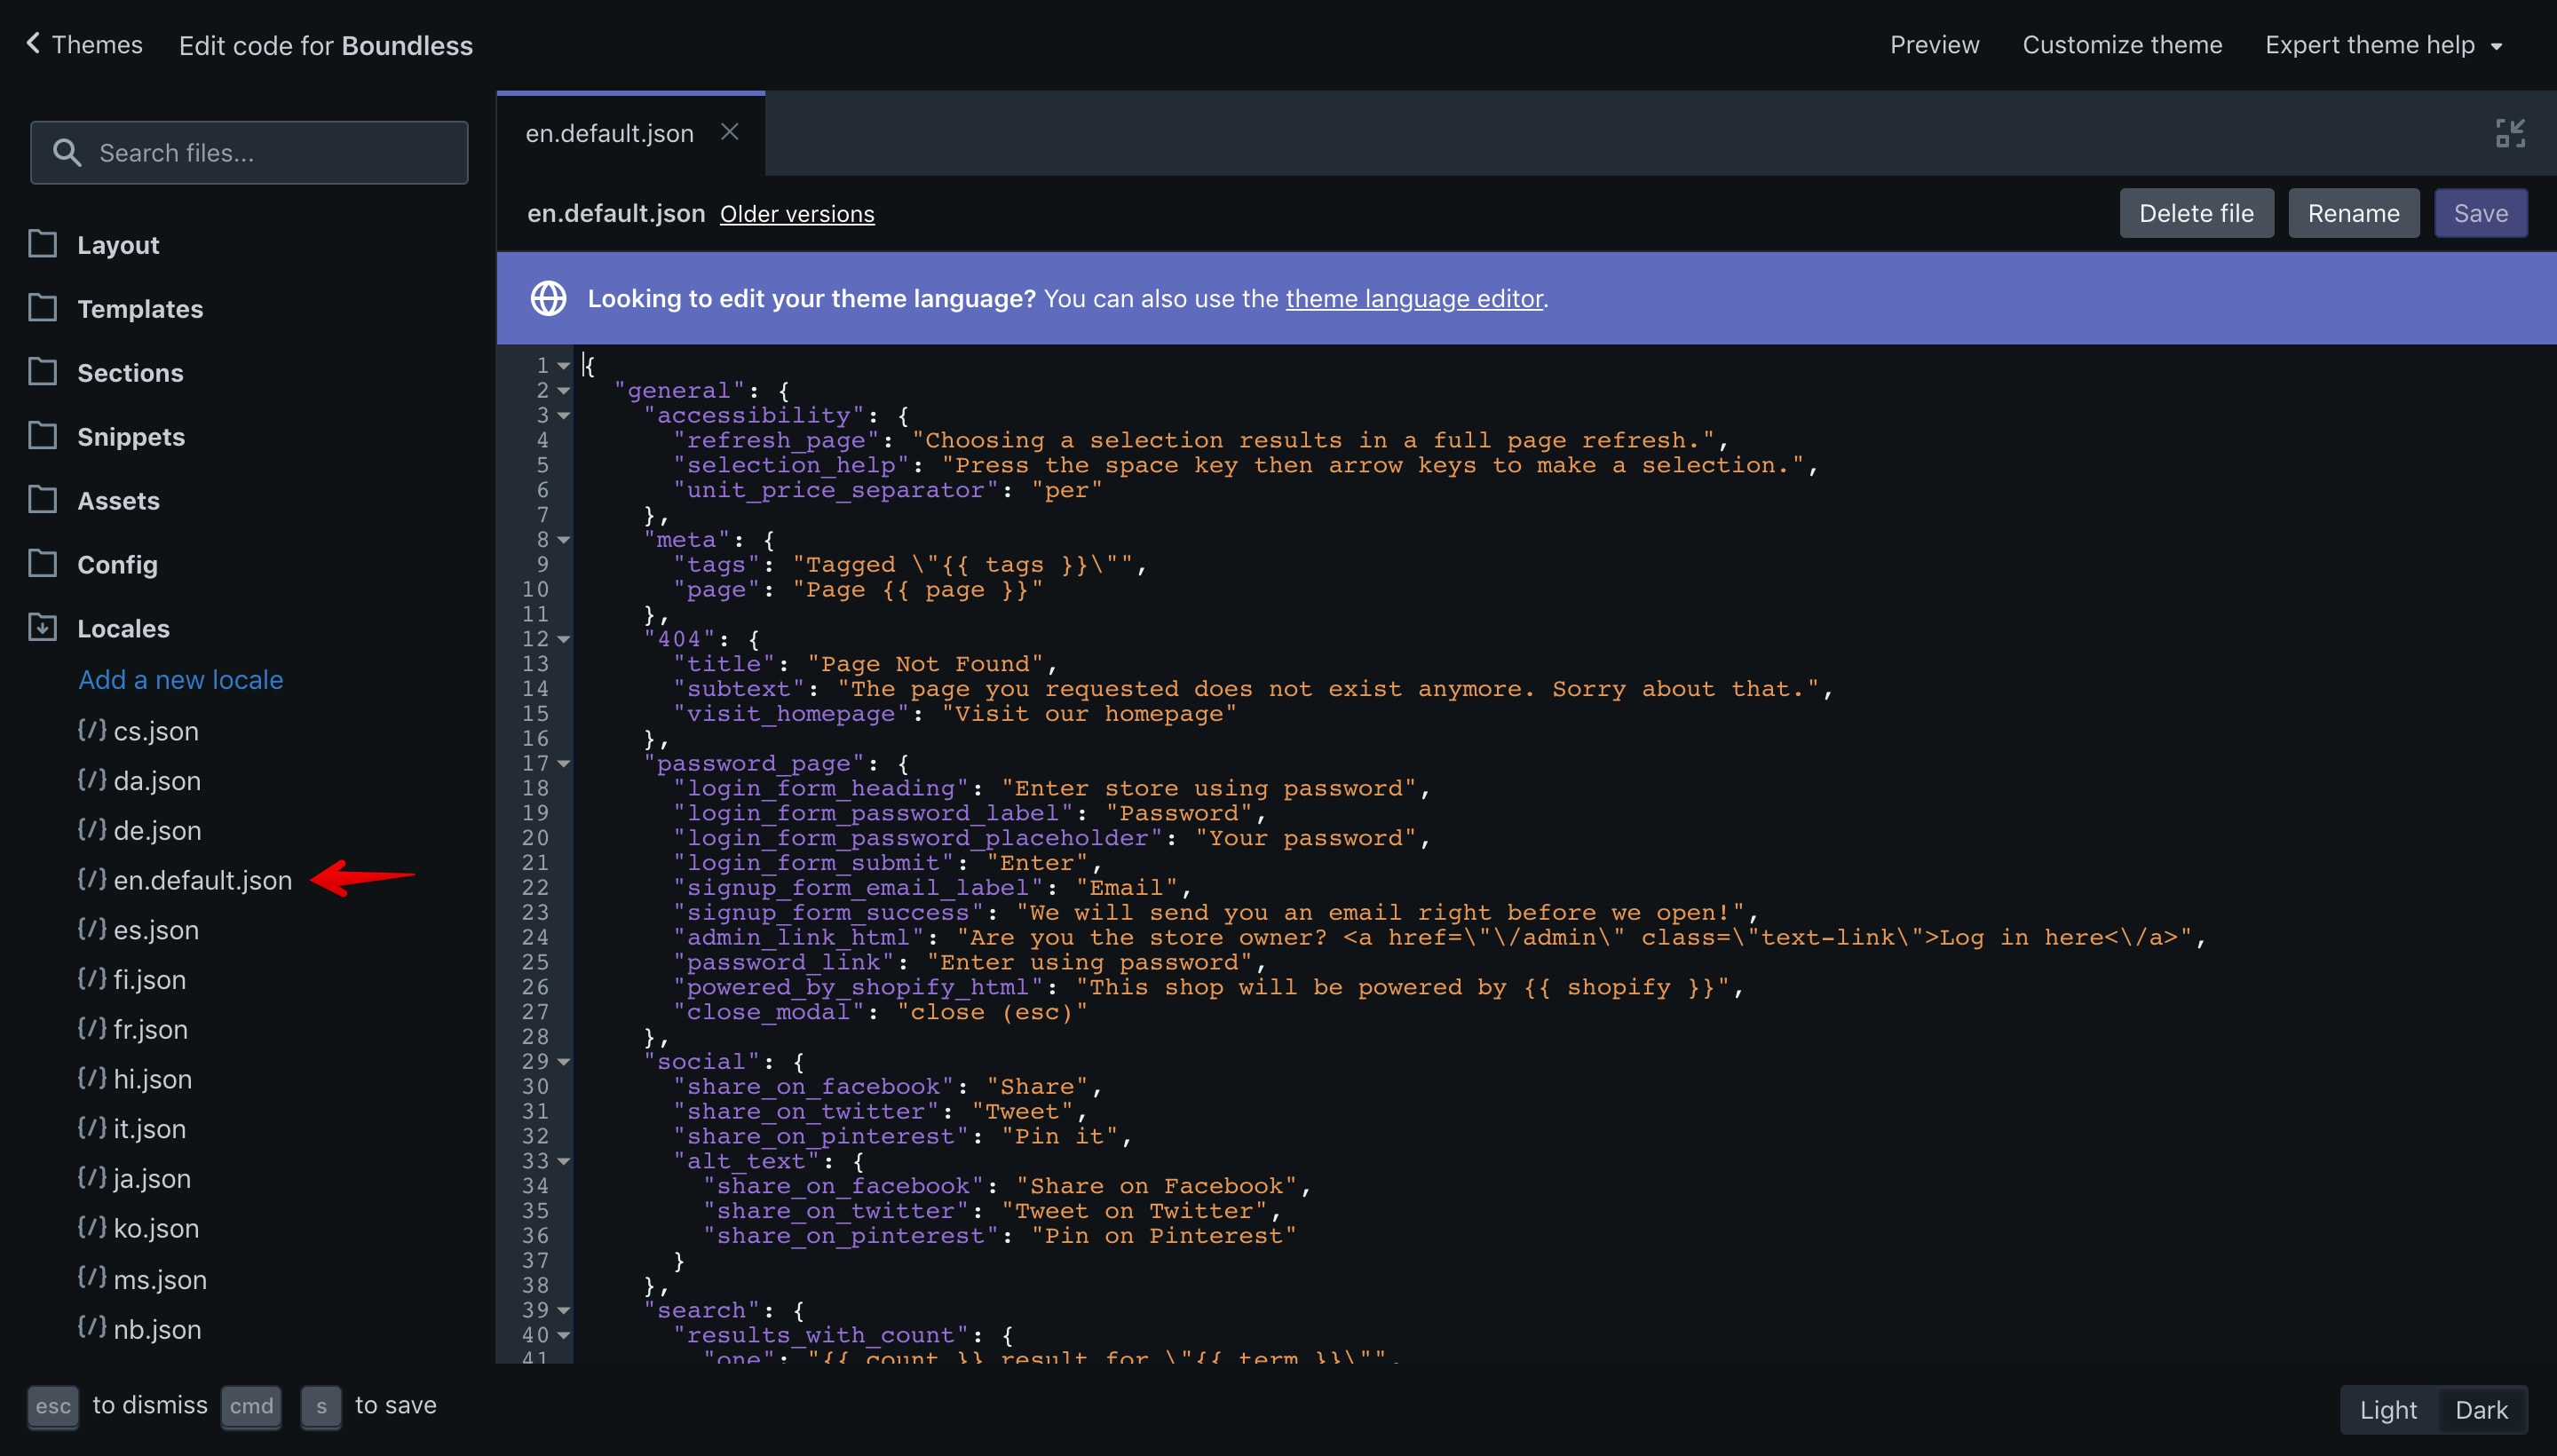 """Boundless theme """"en.default.json"""" file opened in the code editor."""